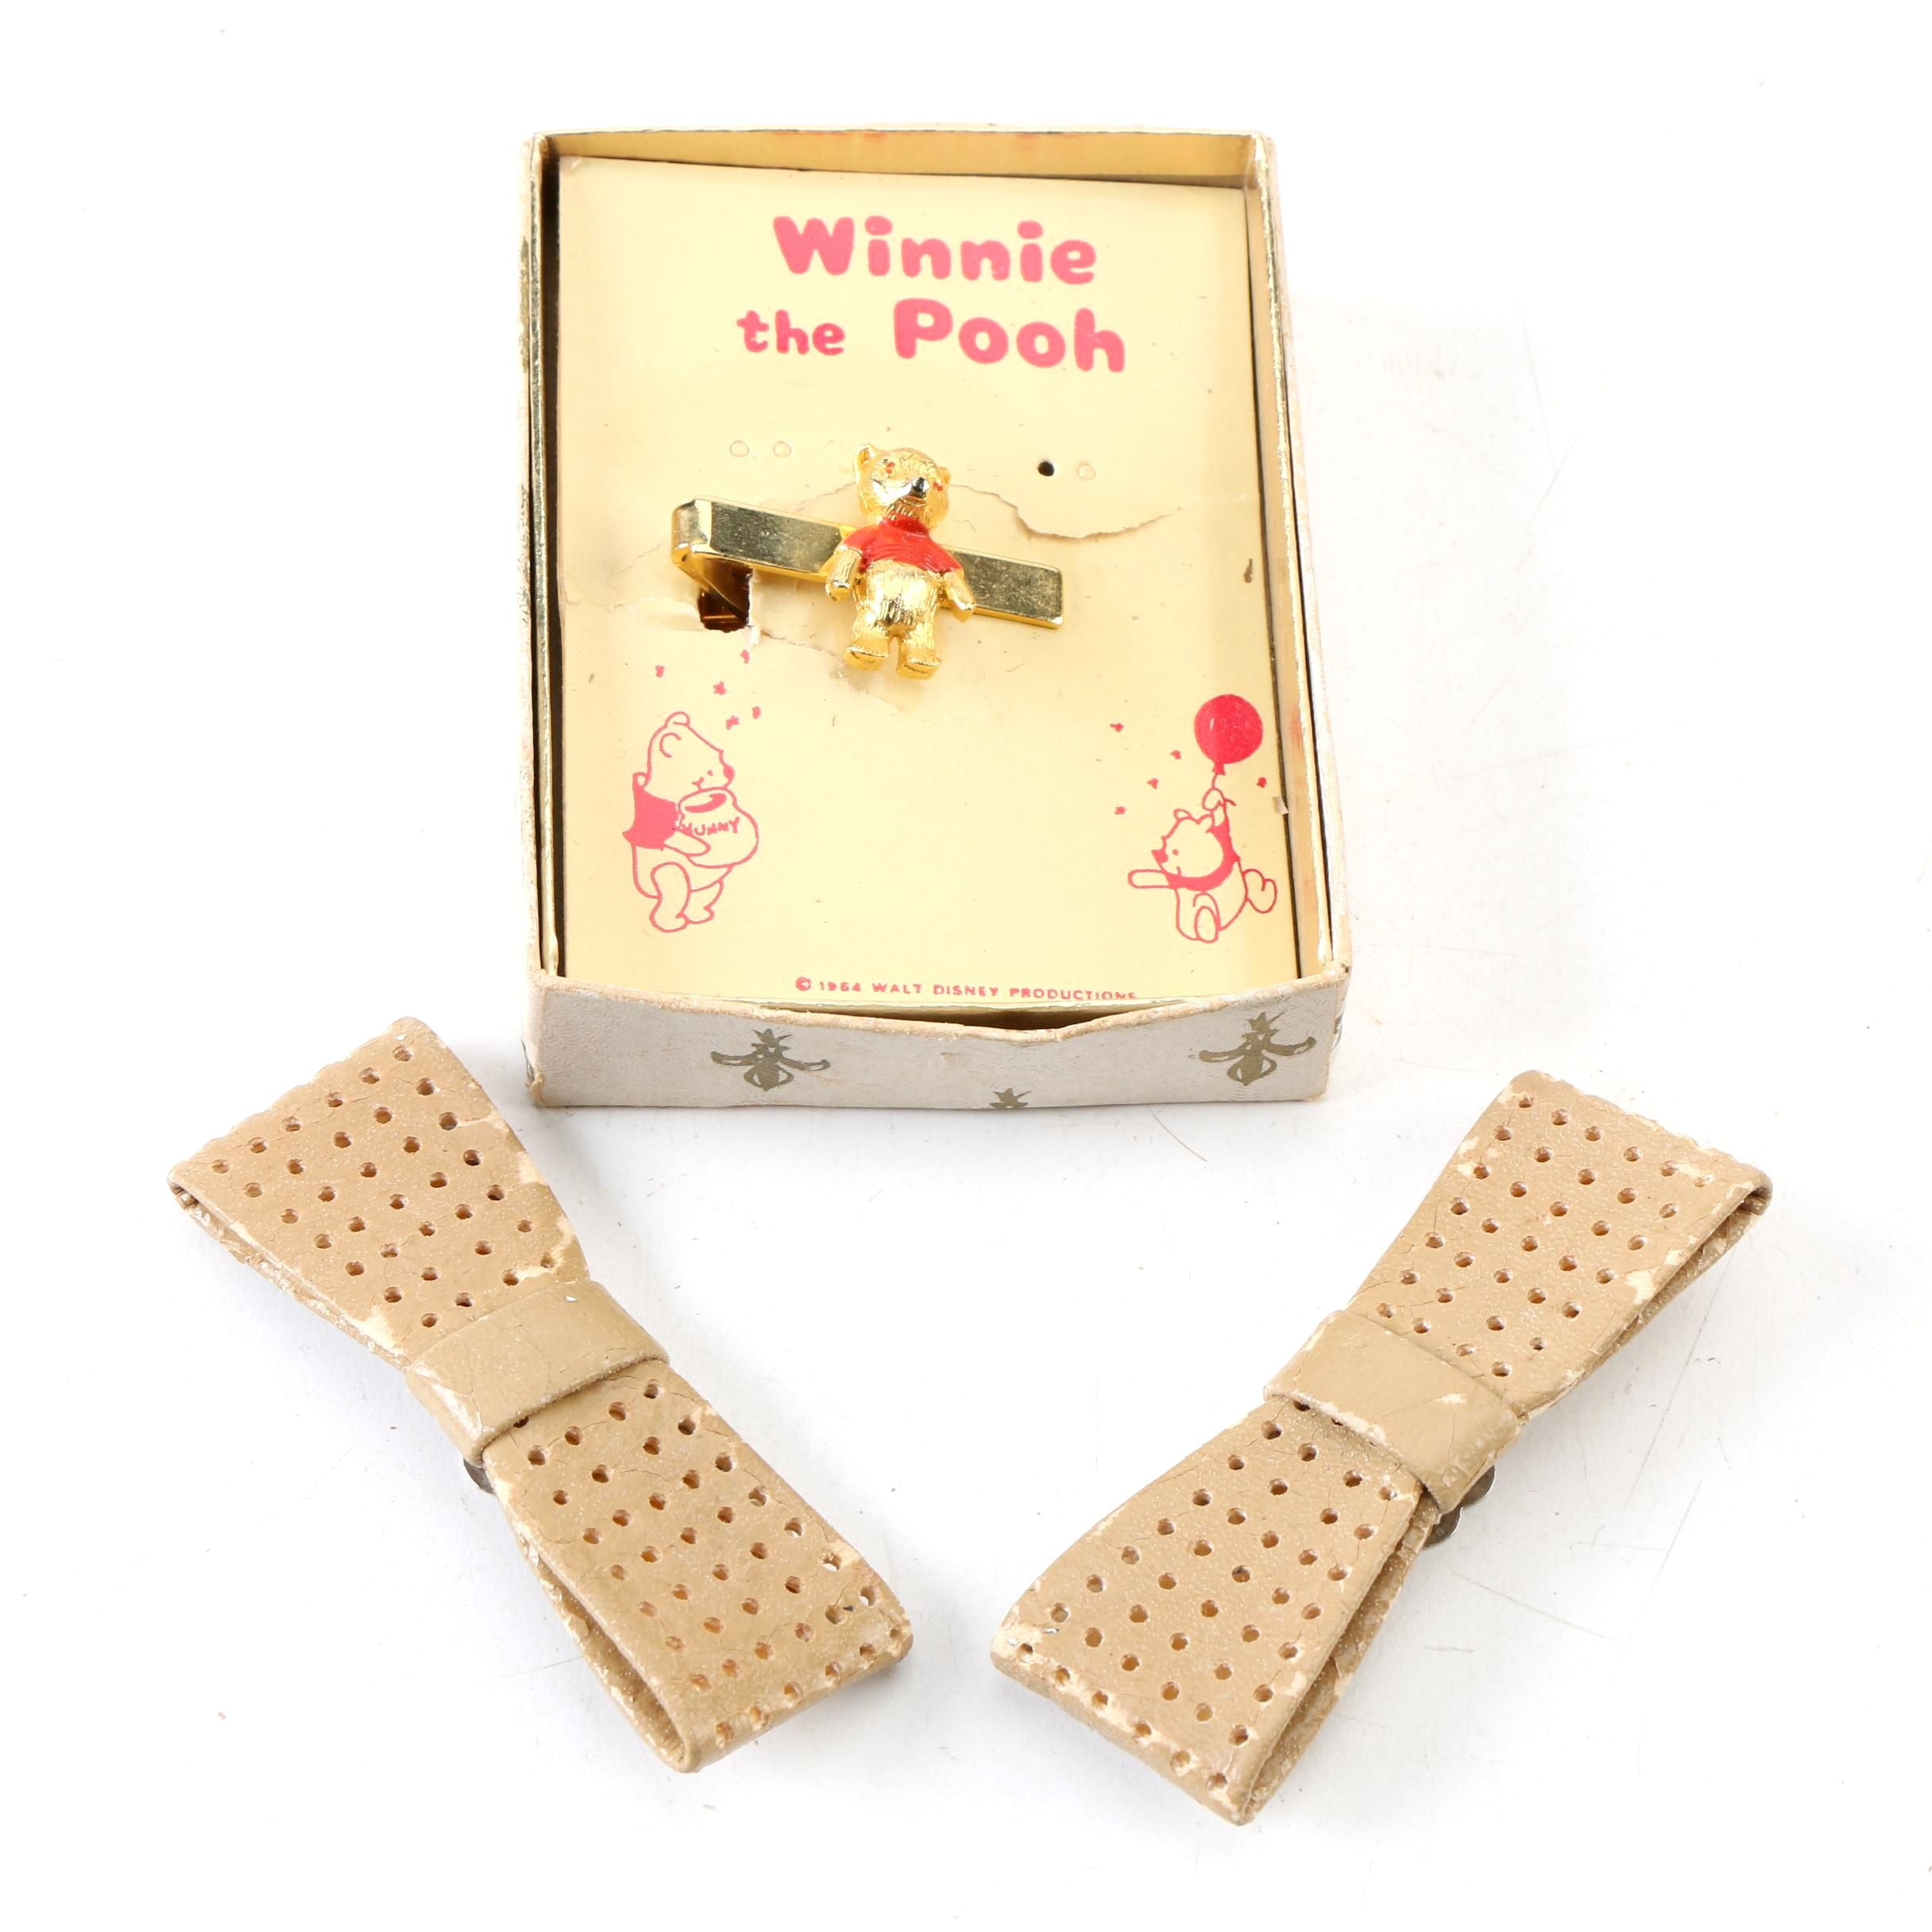 Vintage Winnie the Pooh Enameled Tie Clip and Punched Faux Leather Shoe Clips